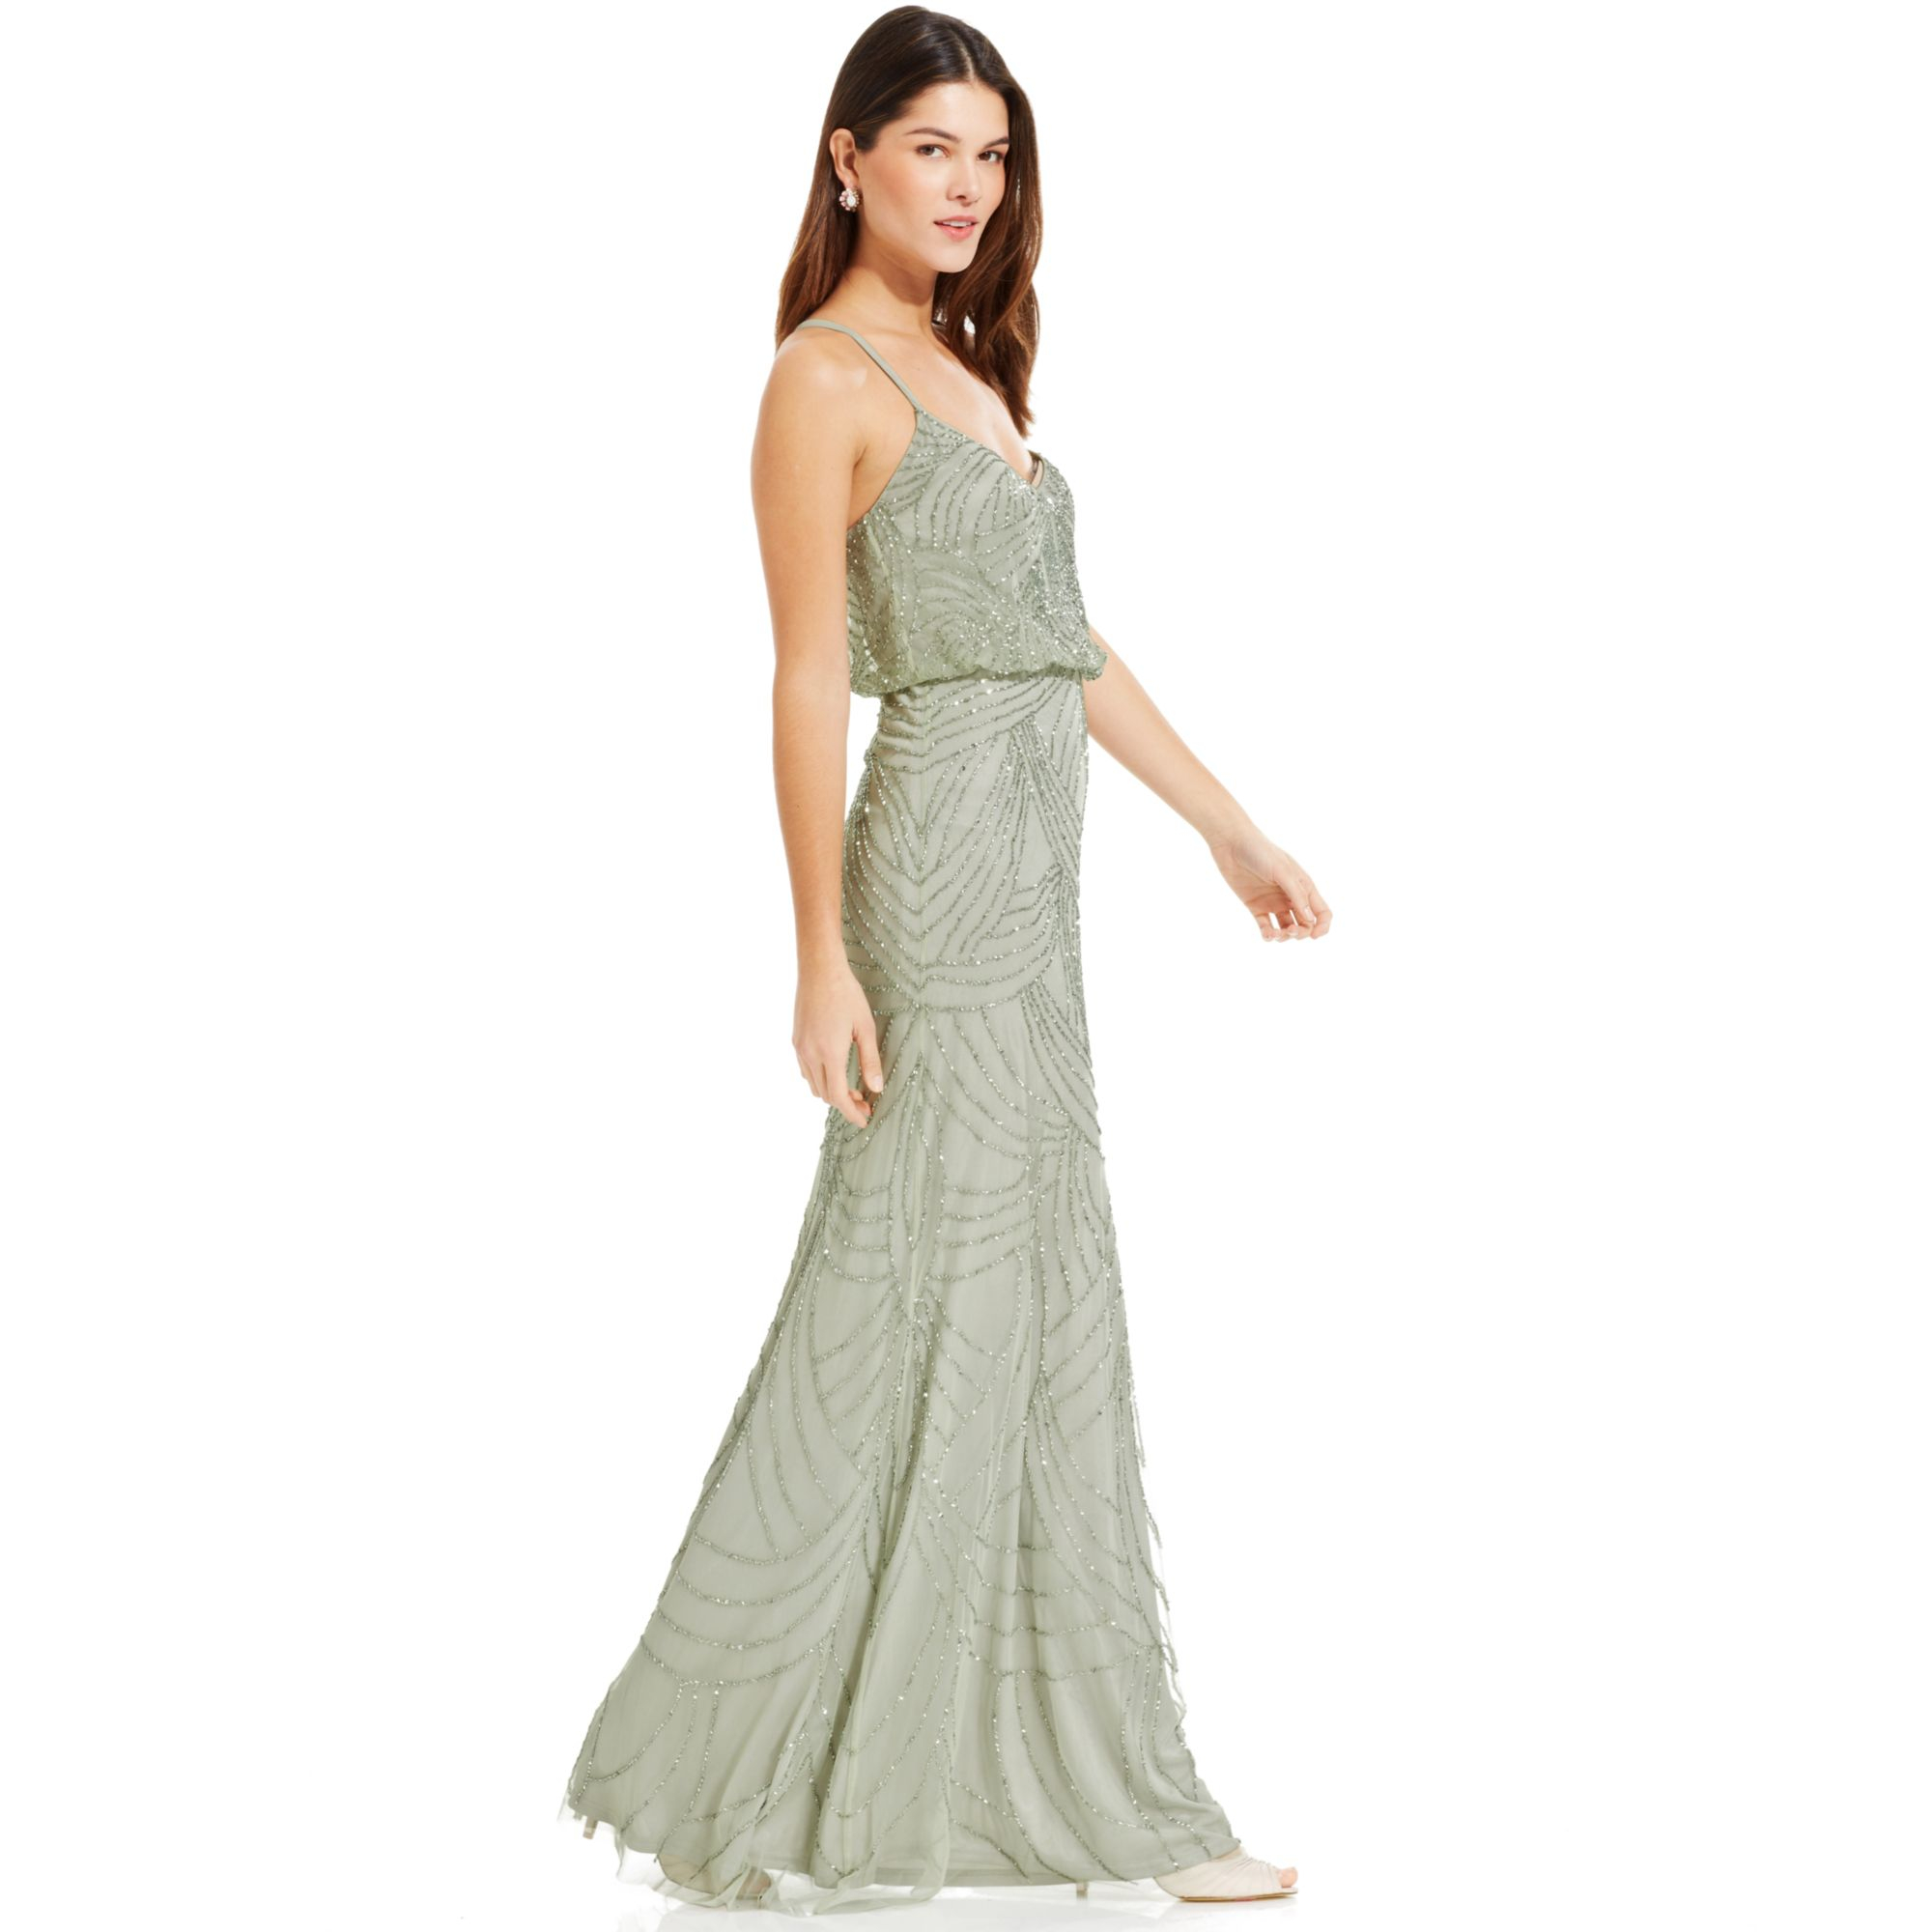 Lyst - Adrianna Papell Sleeveless Beaded Blouson Gown in Green